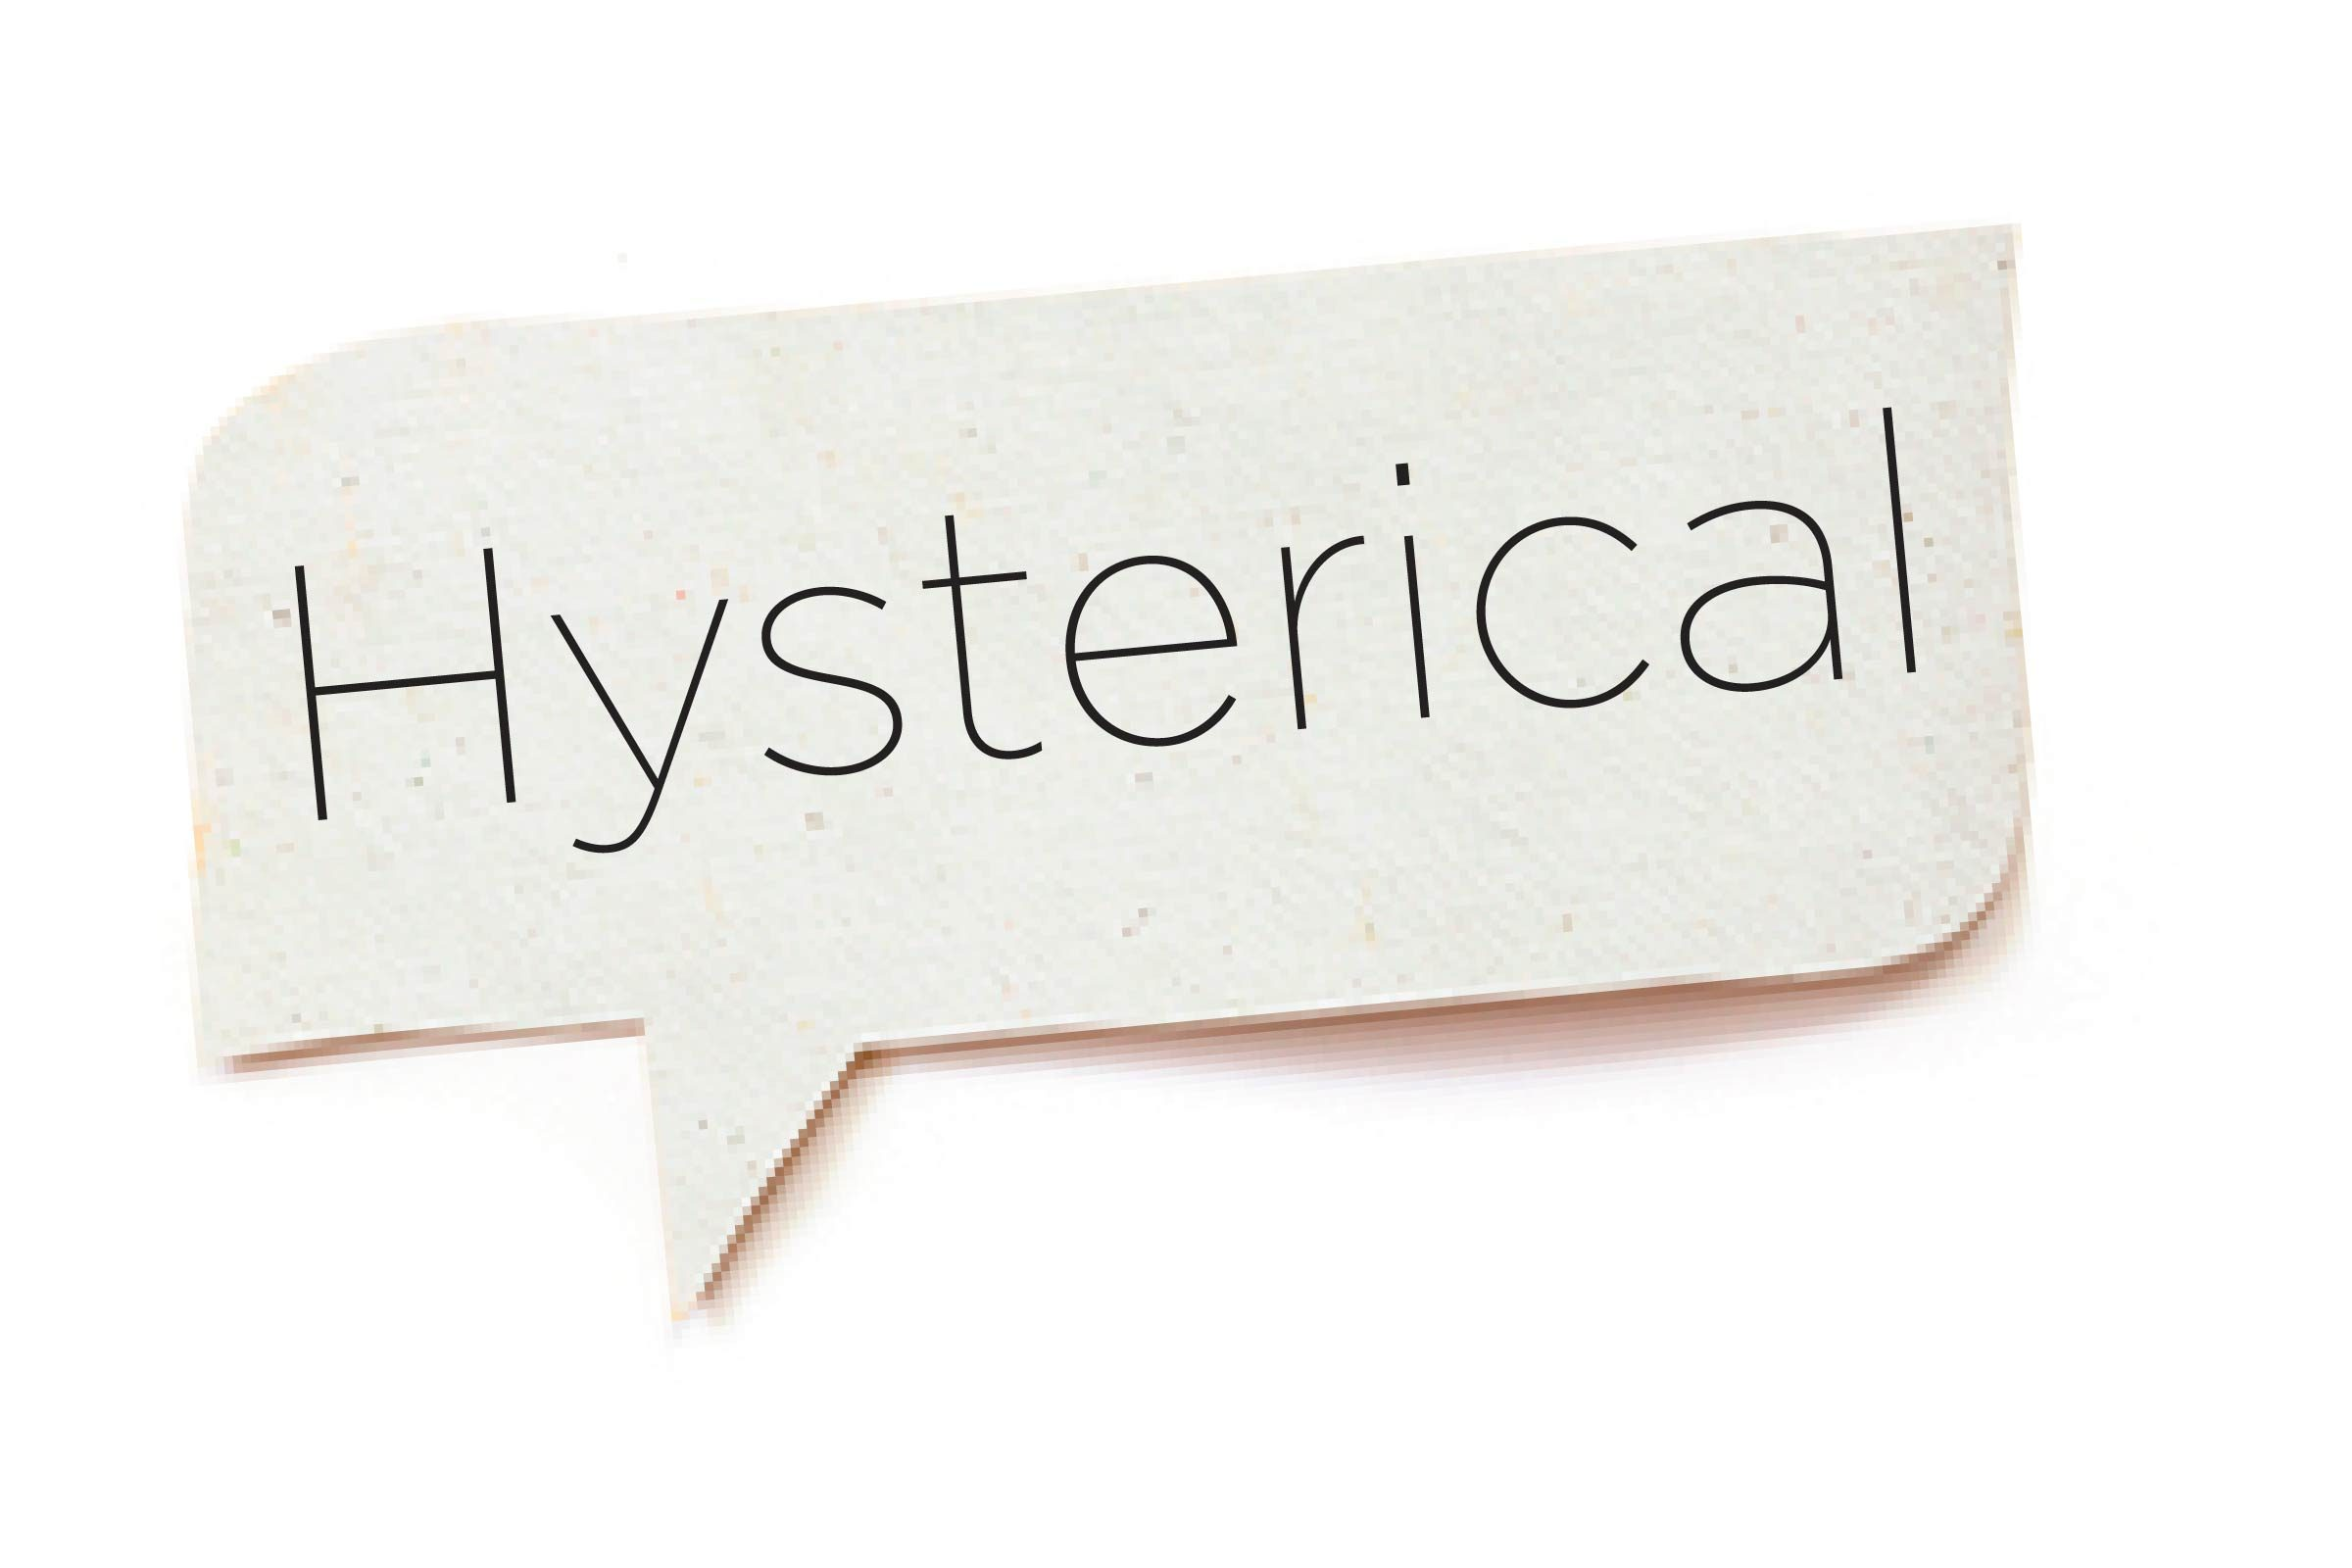 Offensive words - Hysterical